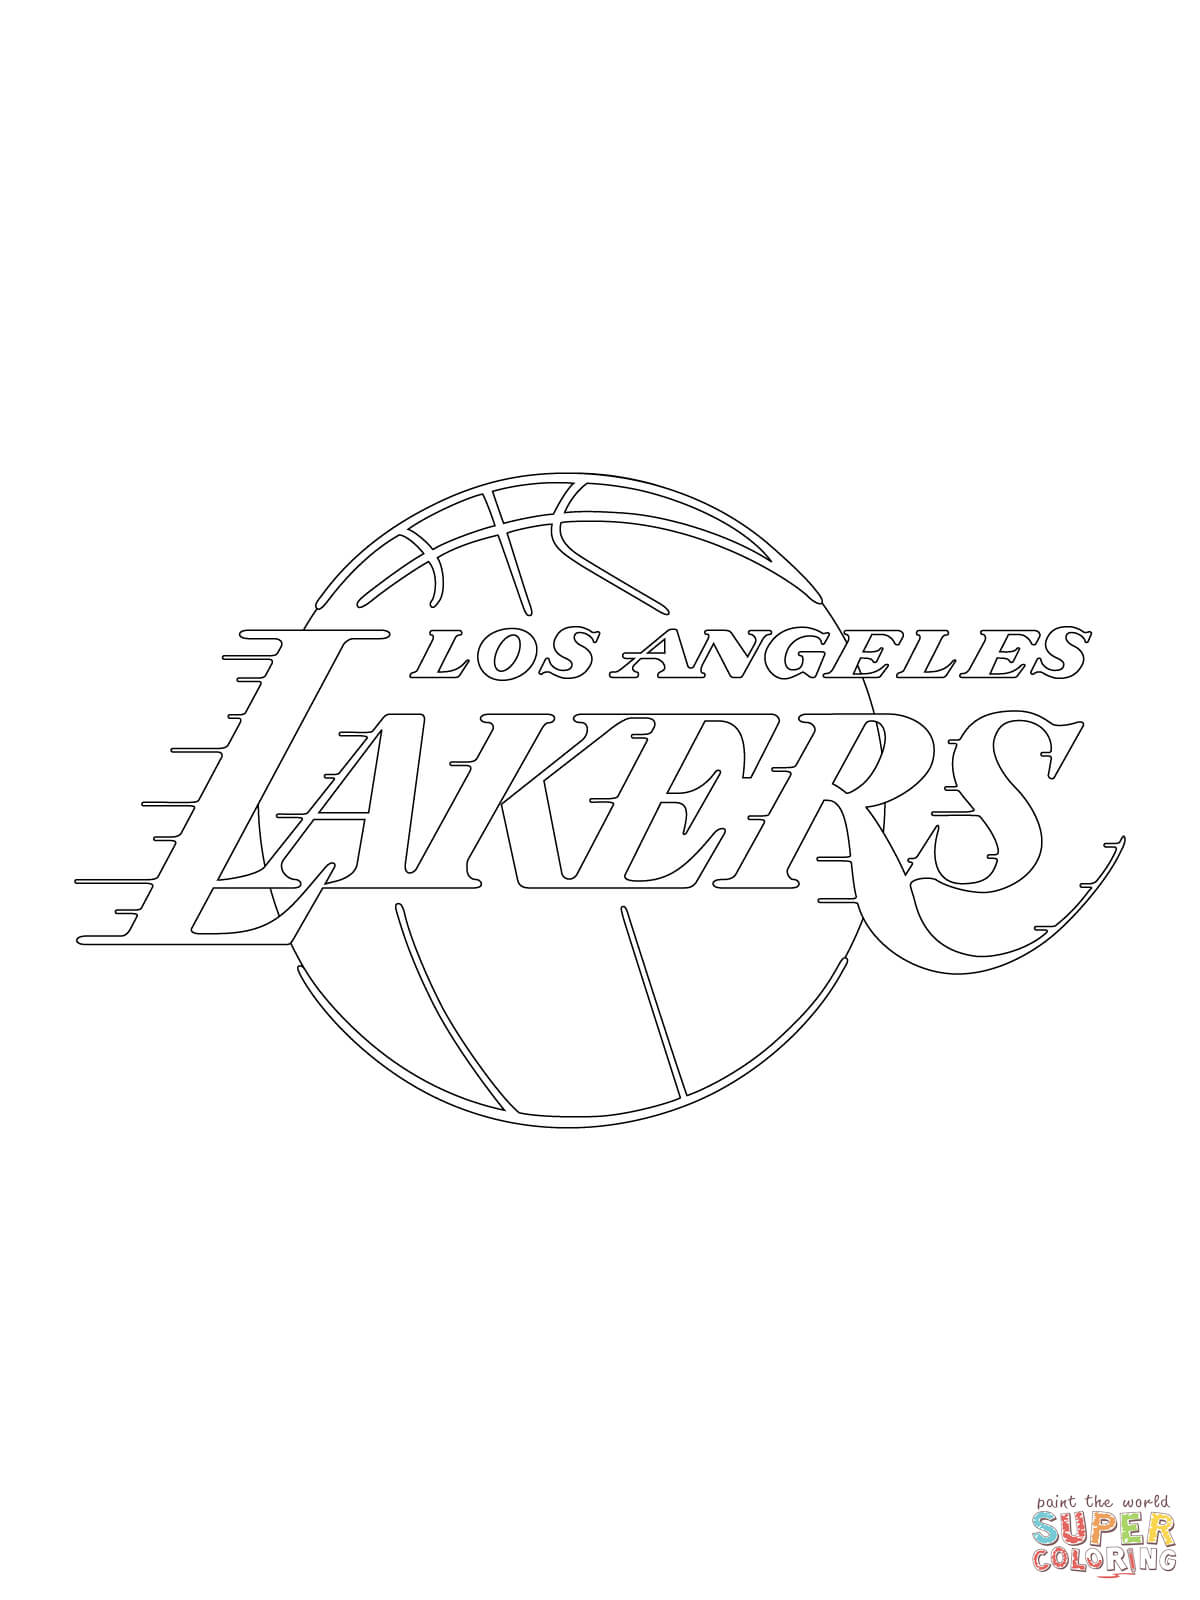 los angeles lakers logo coloring page